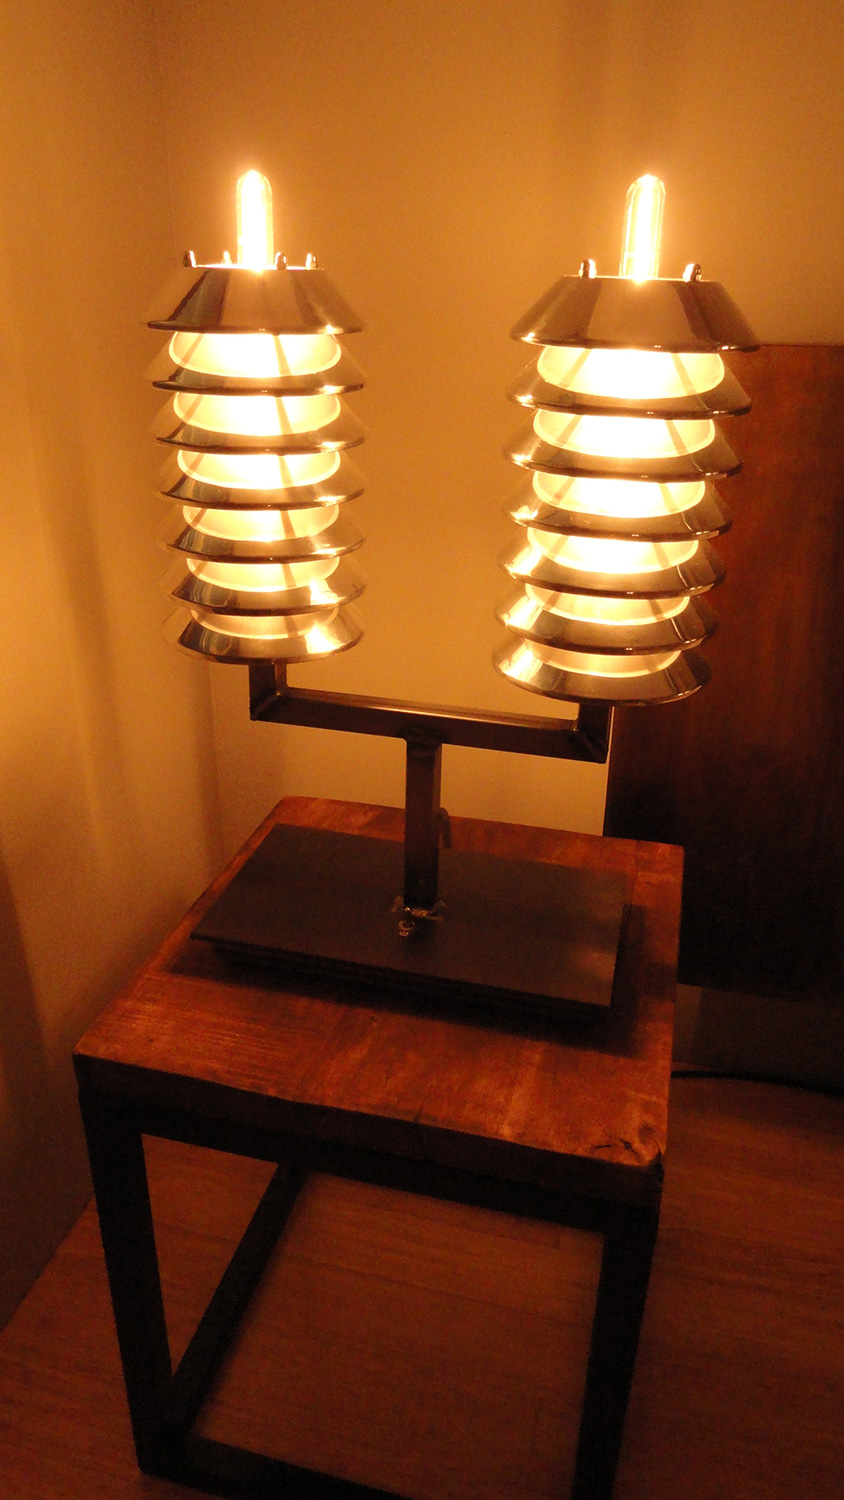 "Another shot of the Atomic Pile table lamps. I think the 11"" bulbs poking out the top give them a nice Frankenstein's lab flair."